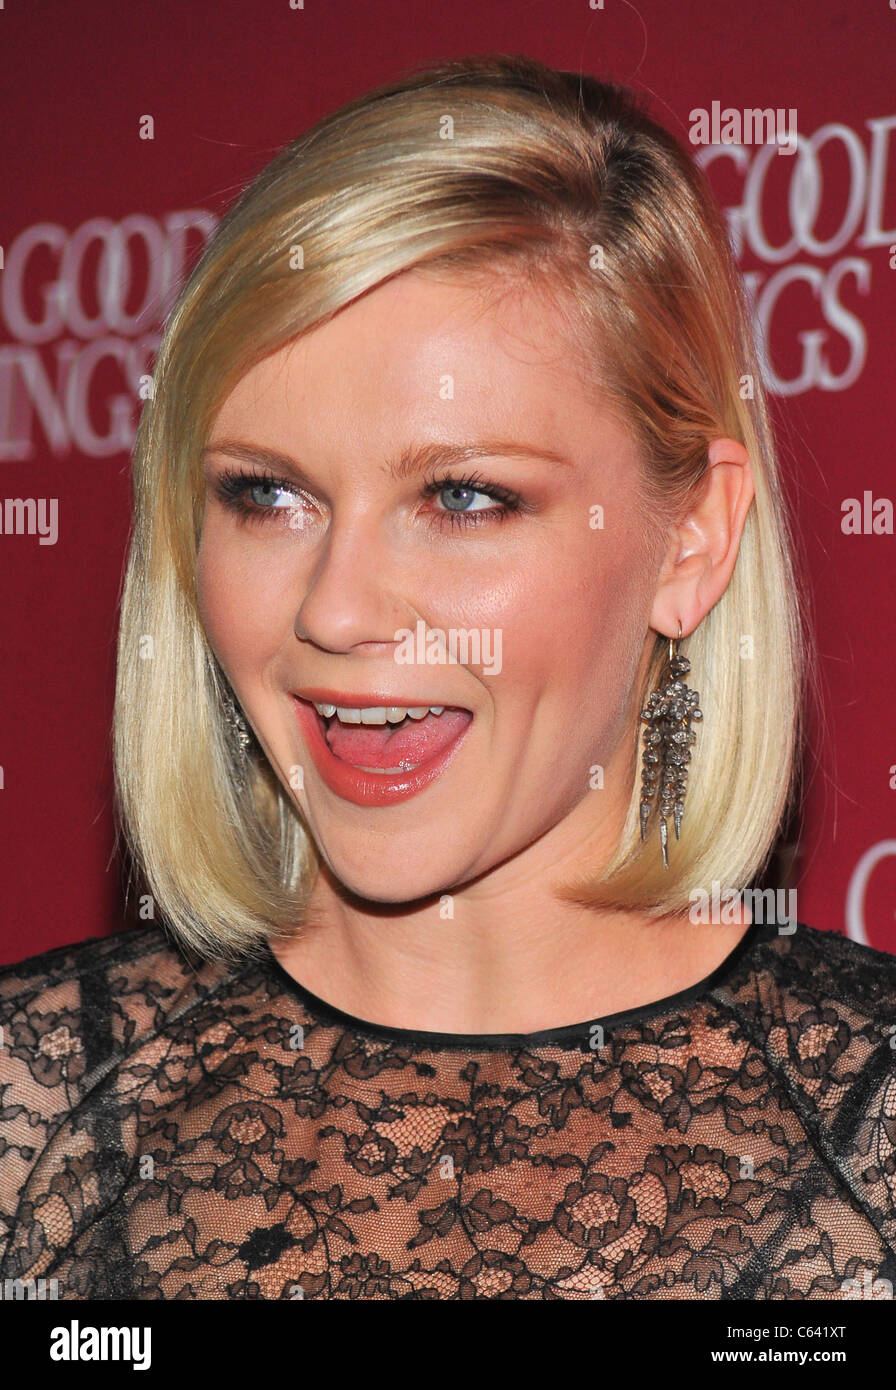 Kirsten Dunst At Arrivals For All Good Things Premiere School Of